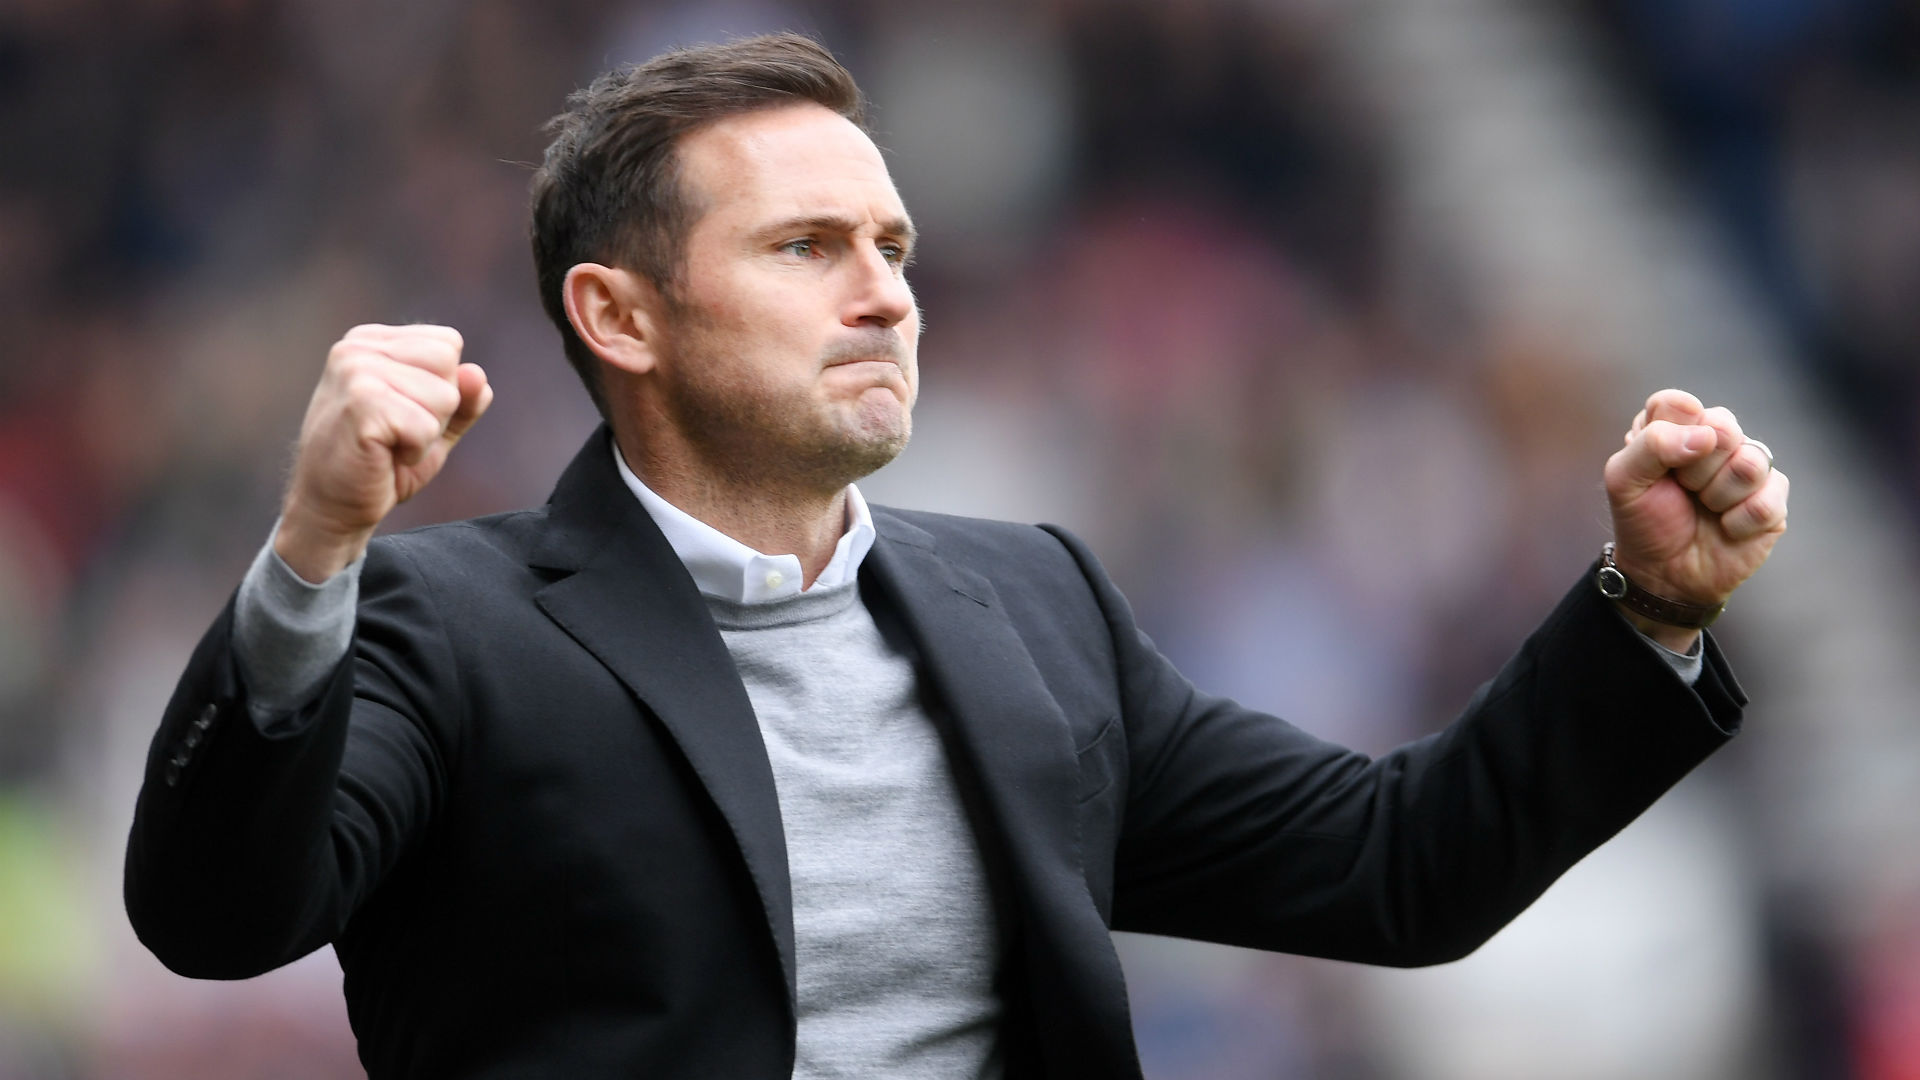 'It would be a major surprise if he doesn't get the job' - Redknapp backs 'class' Lampard for Chelsea job